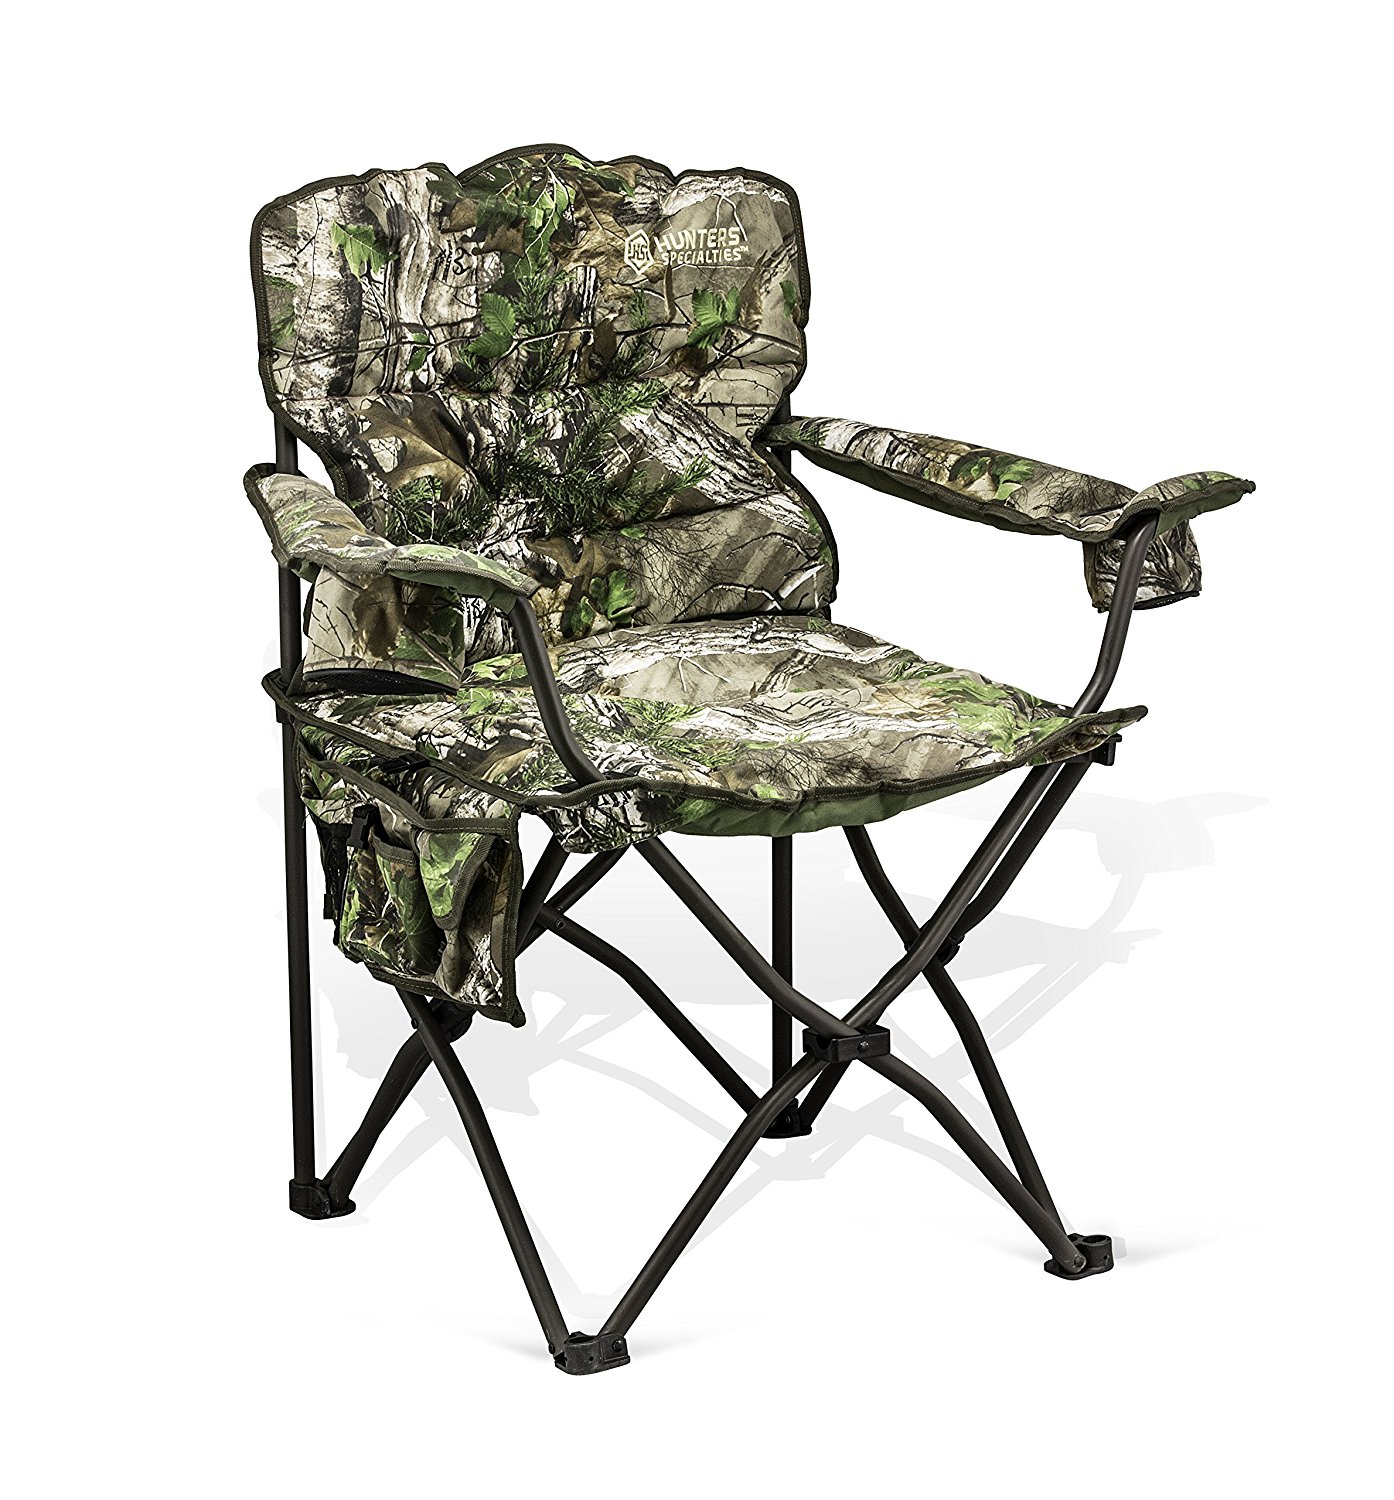 Get Quotations Hunters Specialties Deluxe Pillow Camo Chair Realtree Xg